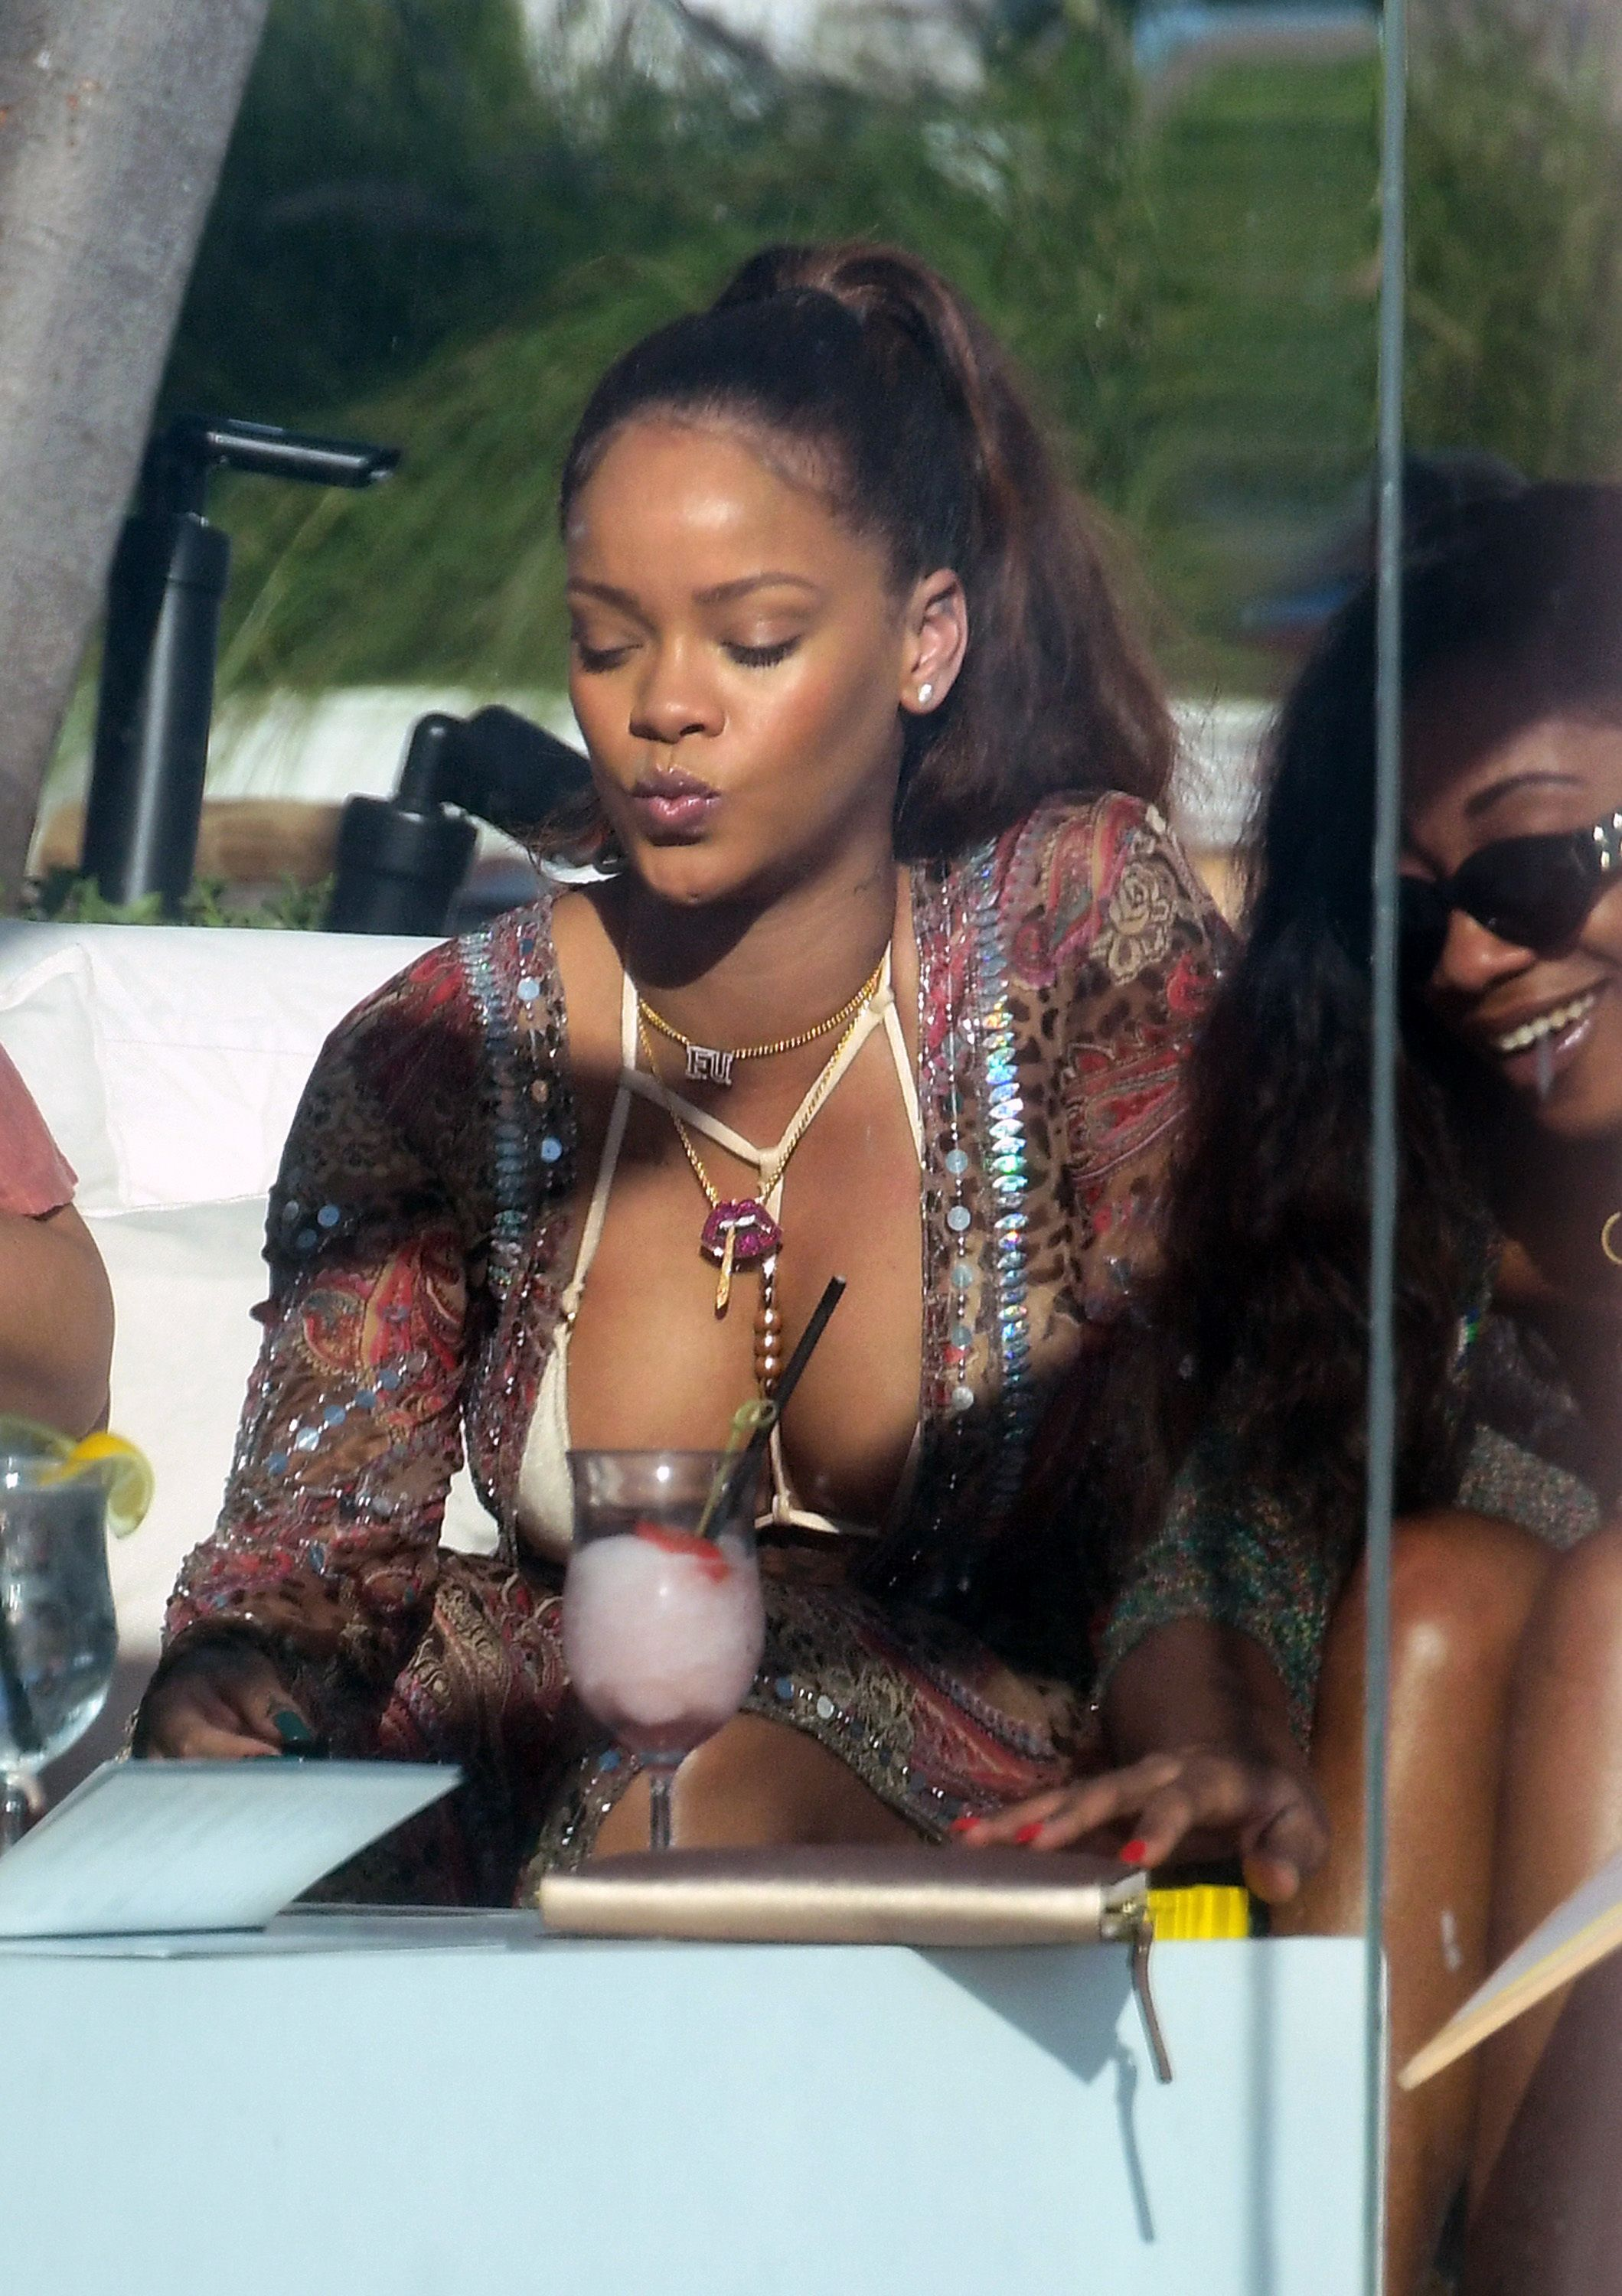 Nude Photo Of Rihanna 26